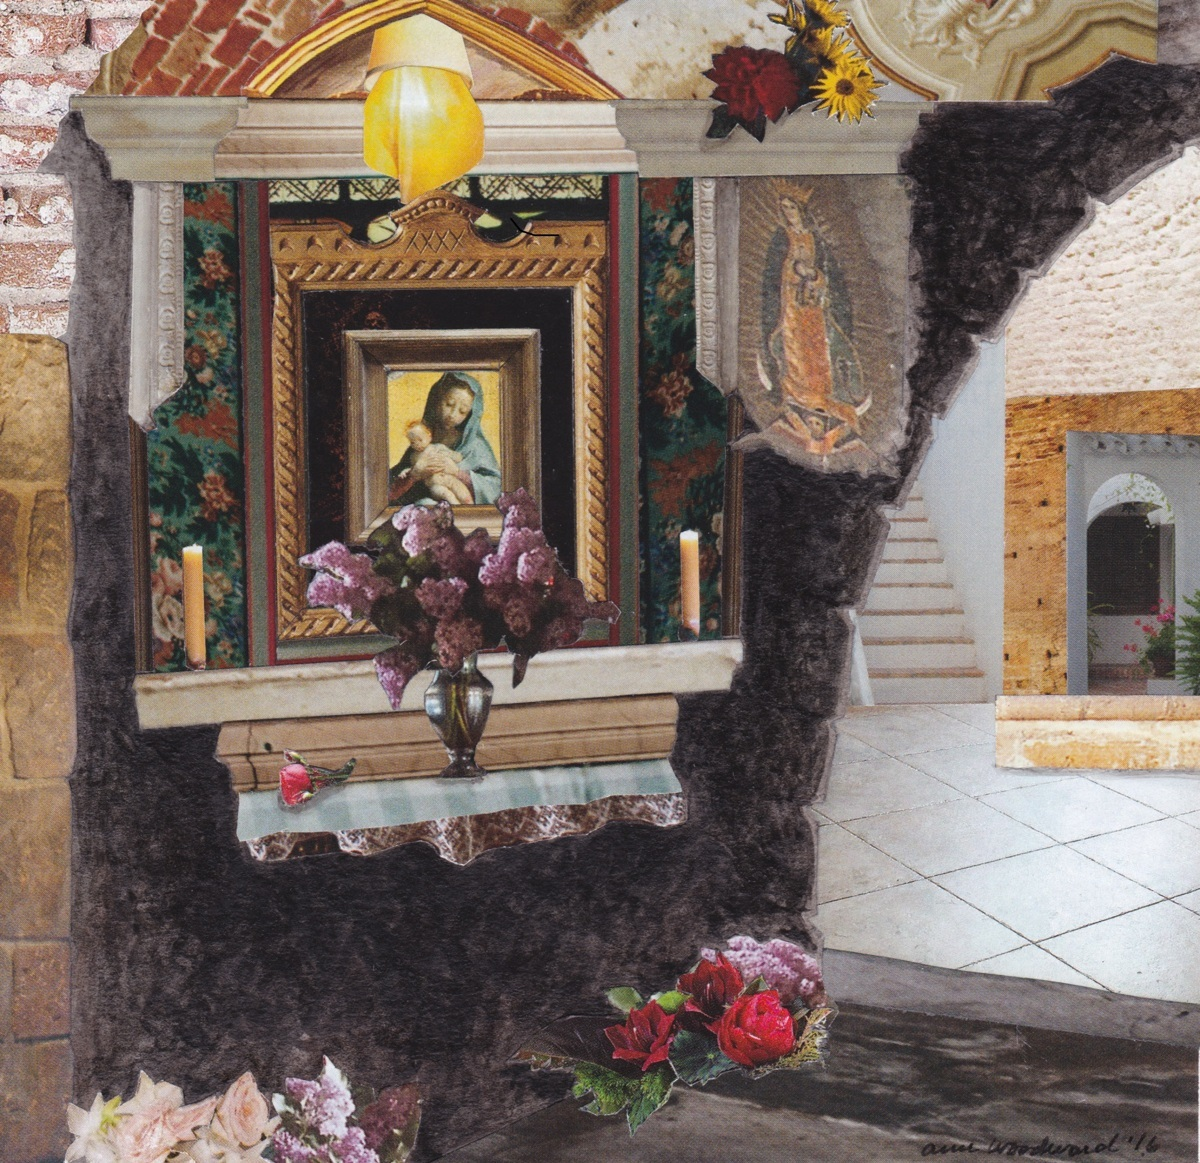 Shrine in Castello (large view)